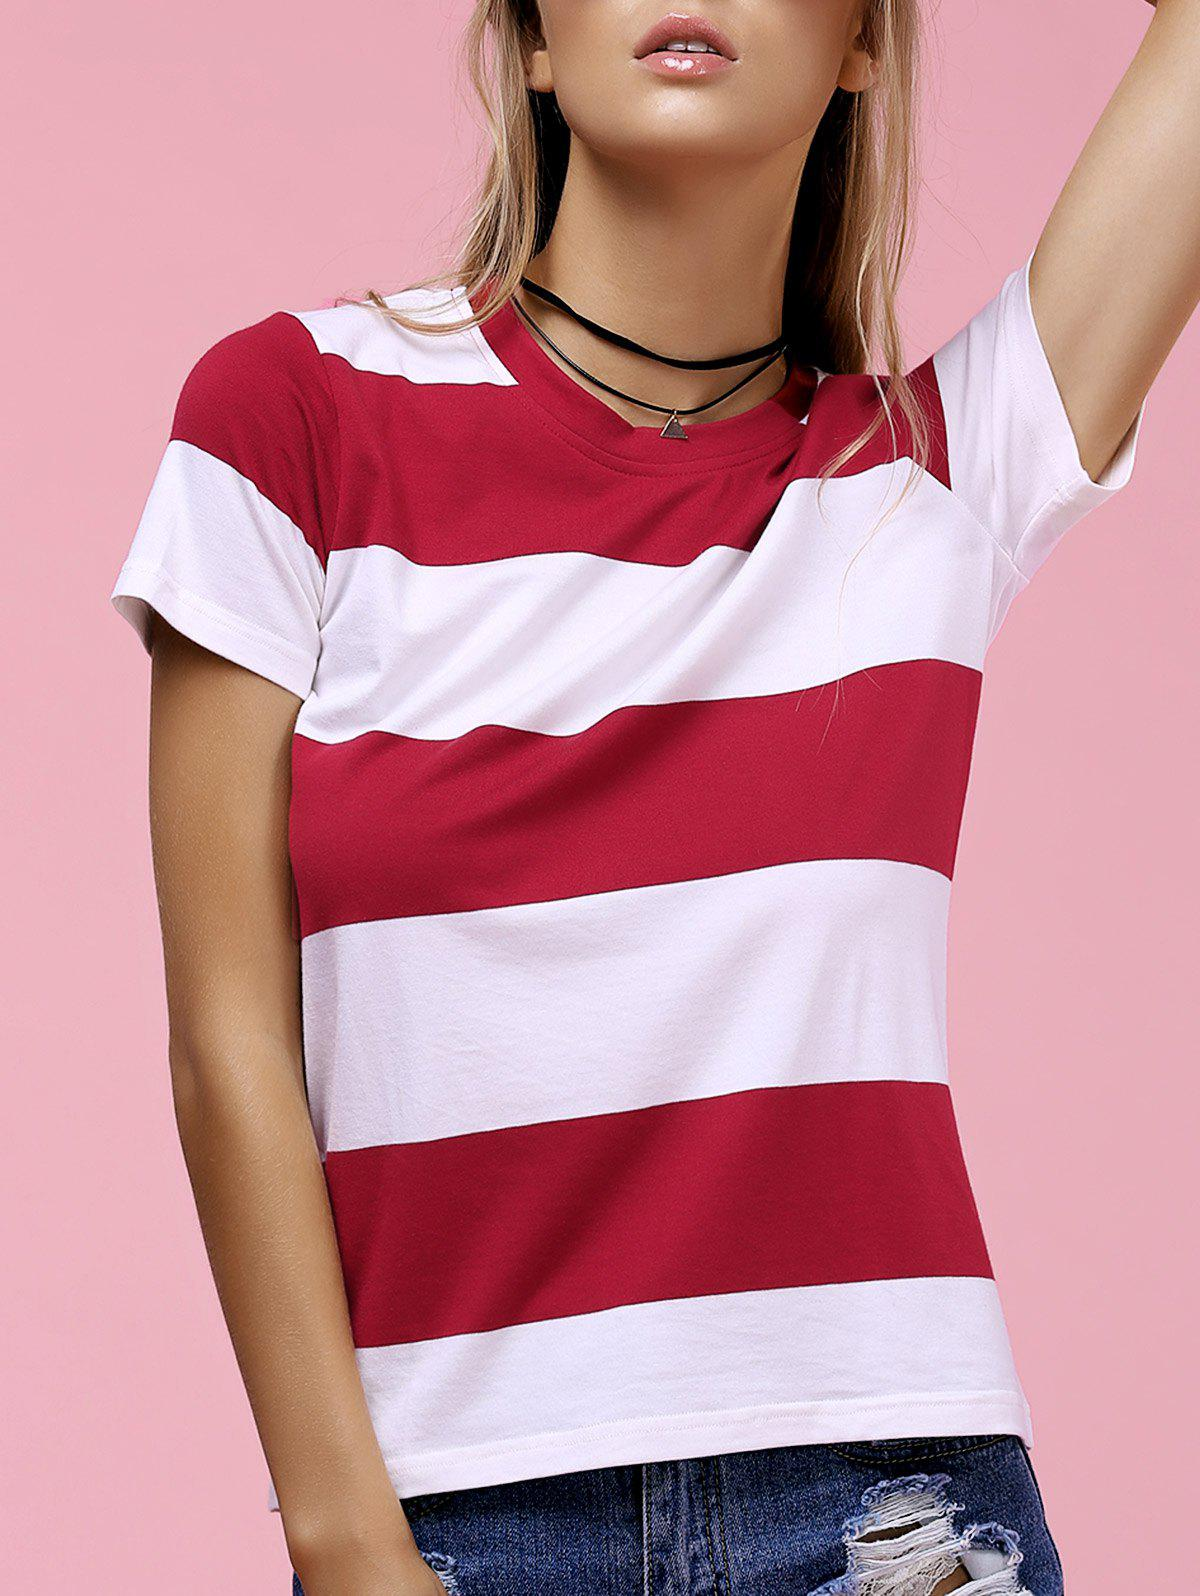 Casual Red And White Striped Round Neck Short Sleeve Tee For Women